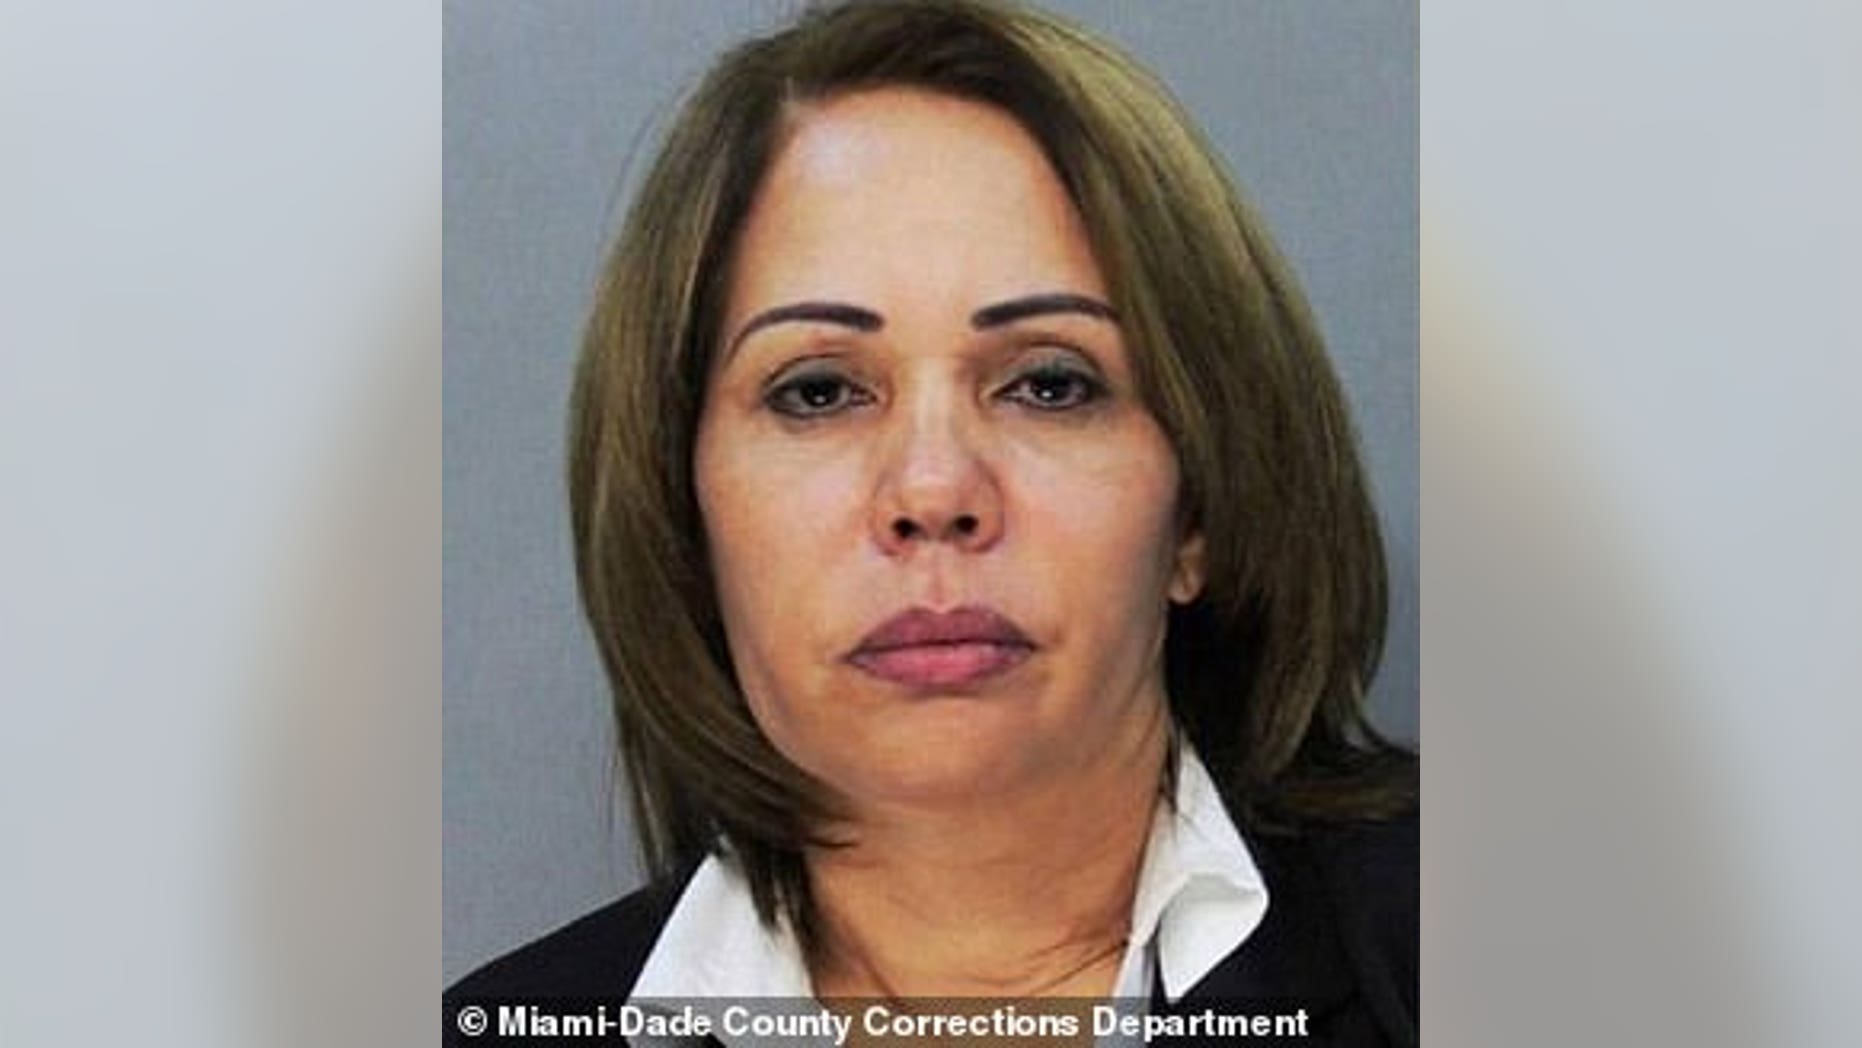 A lawsuit filed by Fior Pichardo de Veloz, in connection with her 2013  arrest,